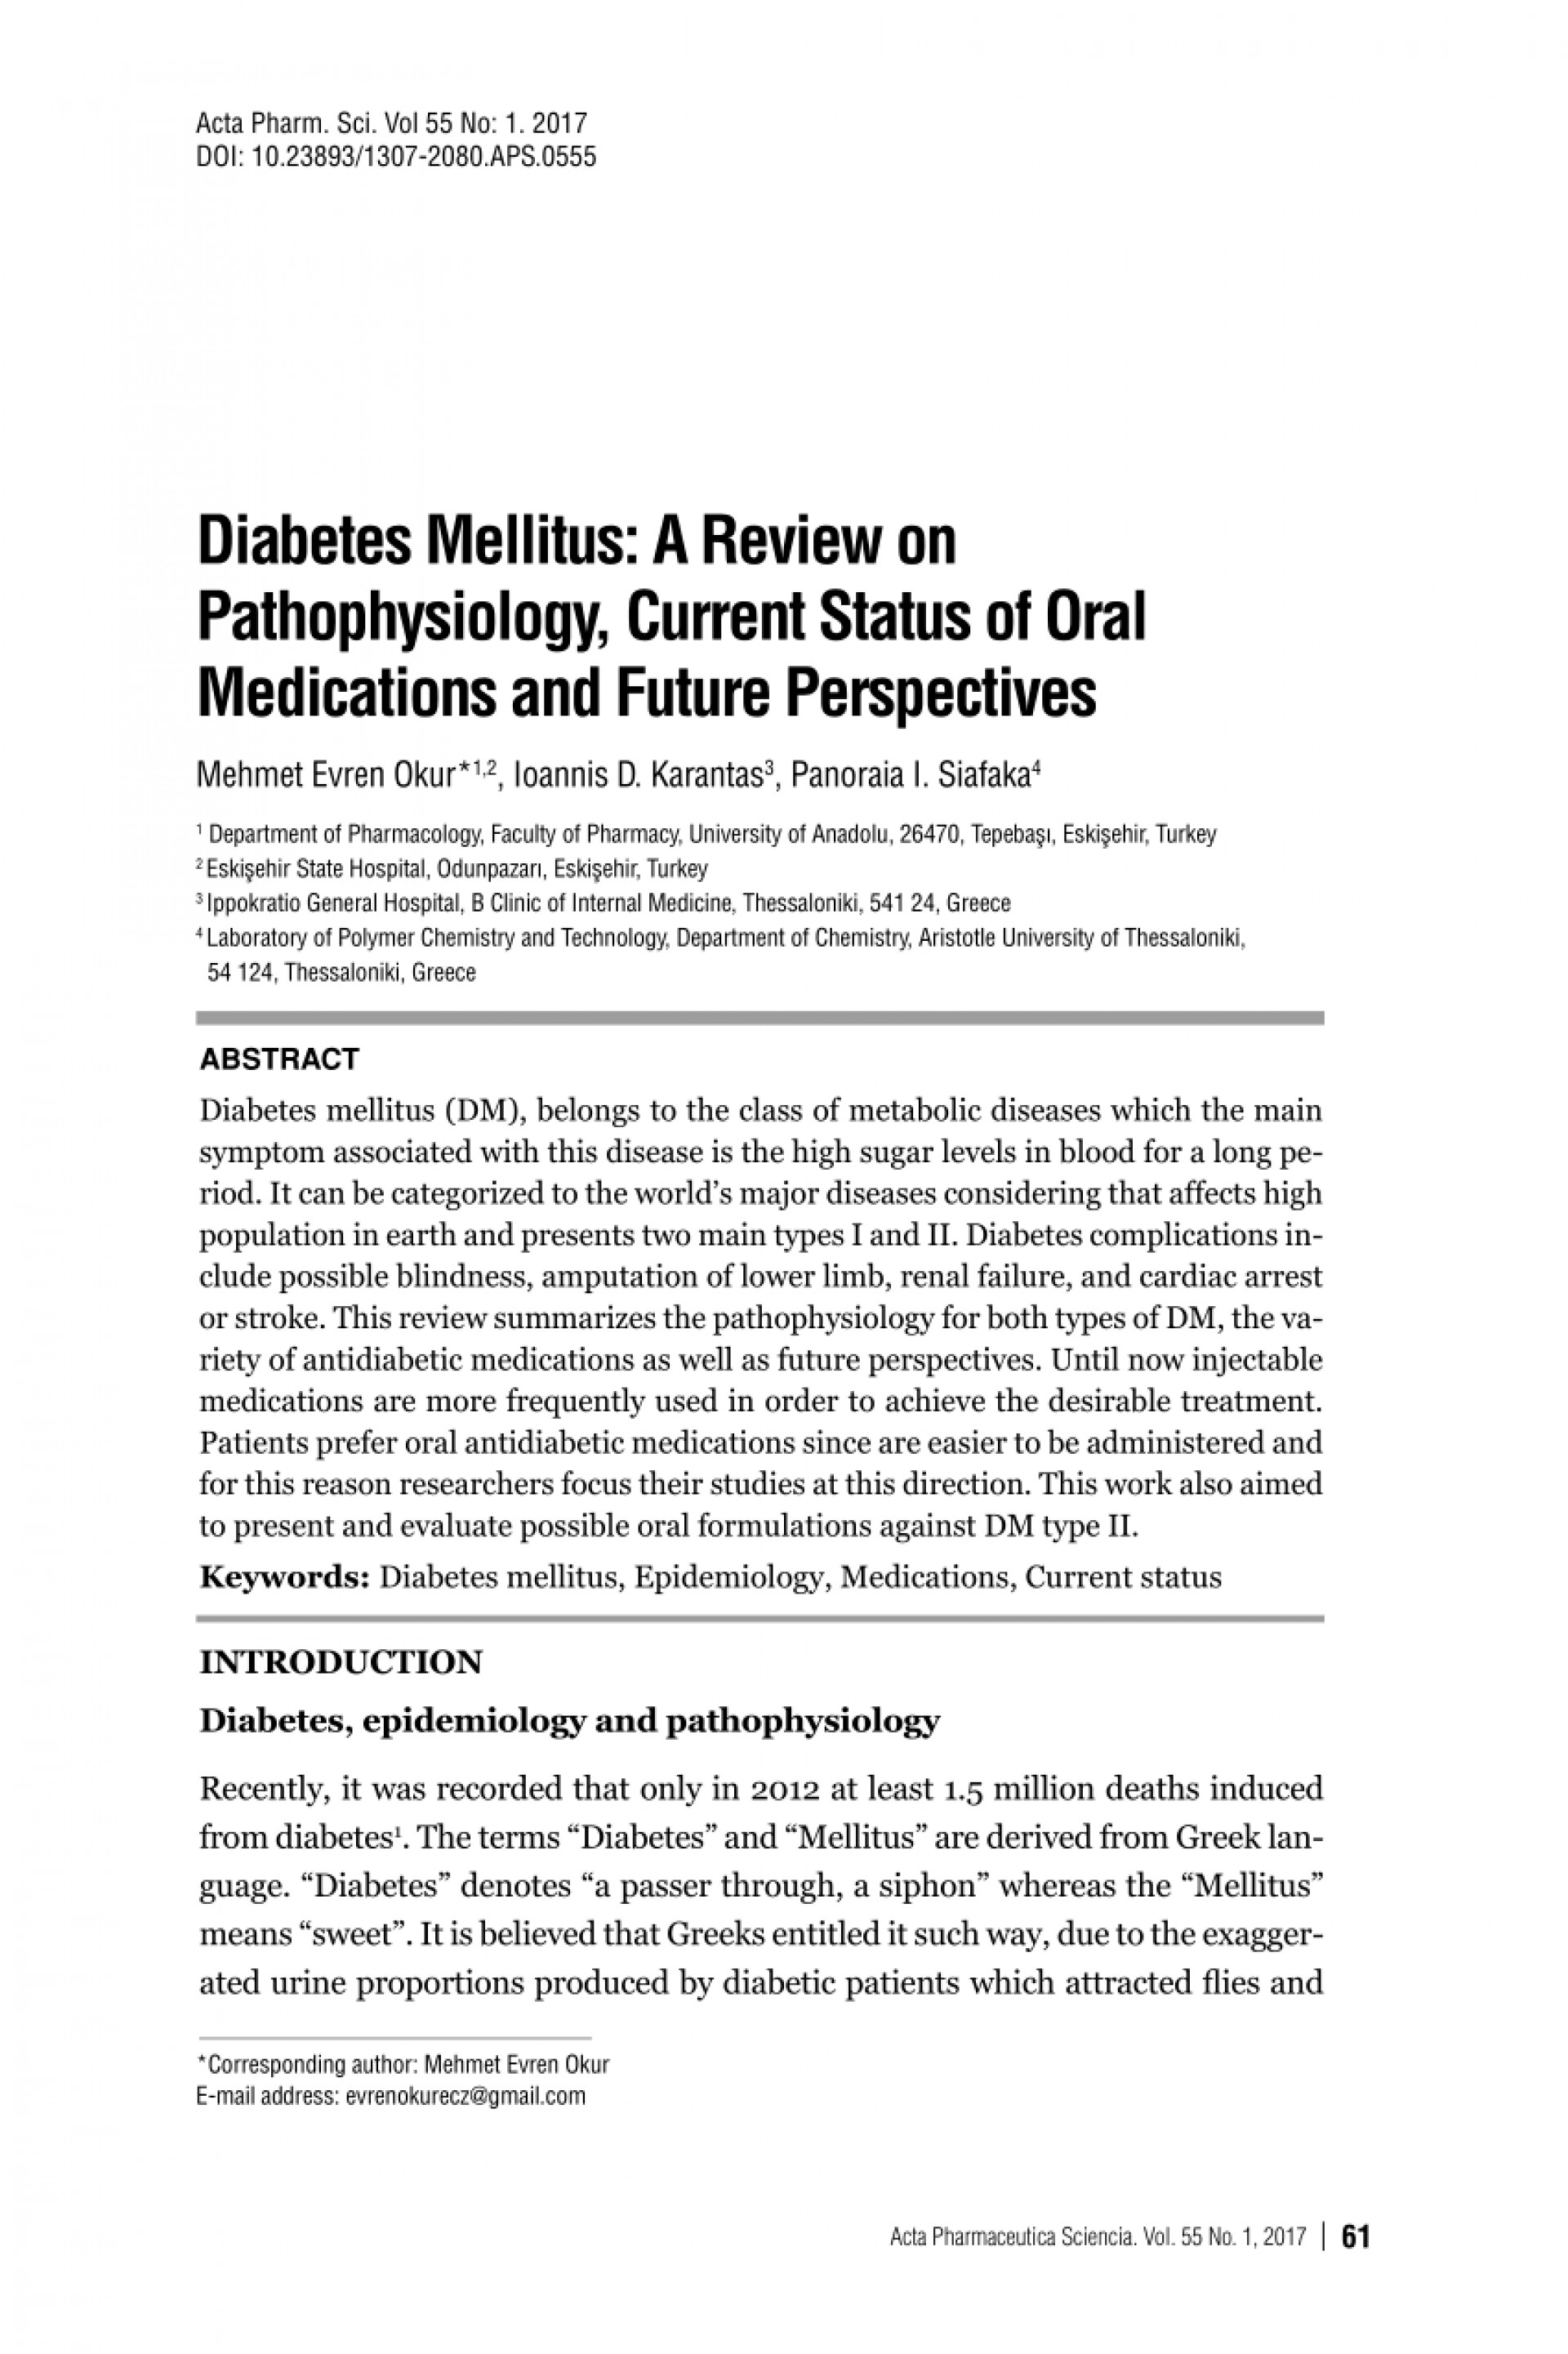 003 Diabetes Mellitus Researchs Pdf Largepreview Magnificent Research Papers 1920